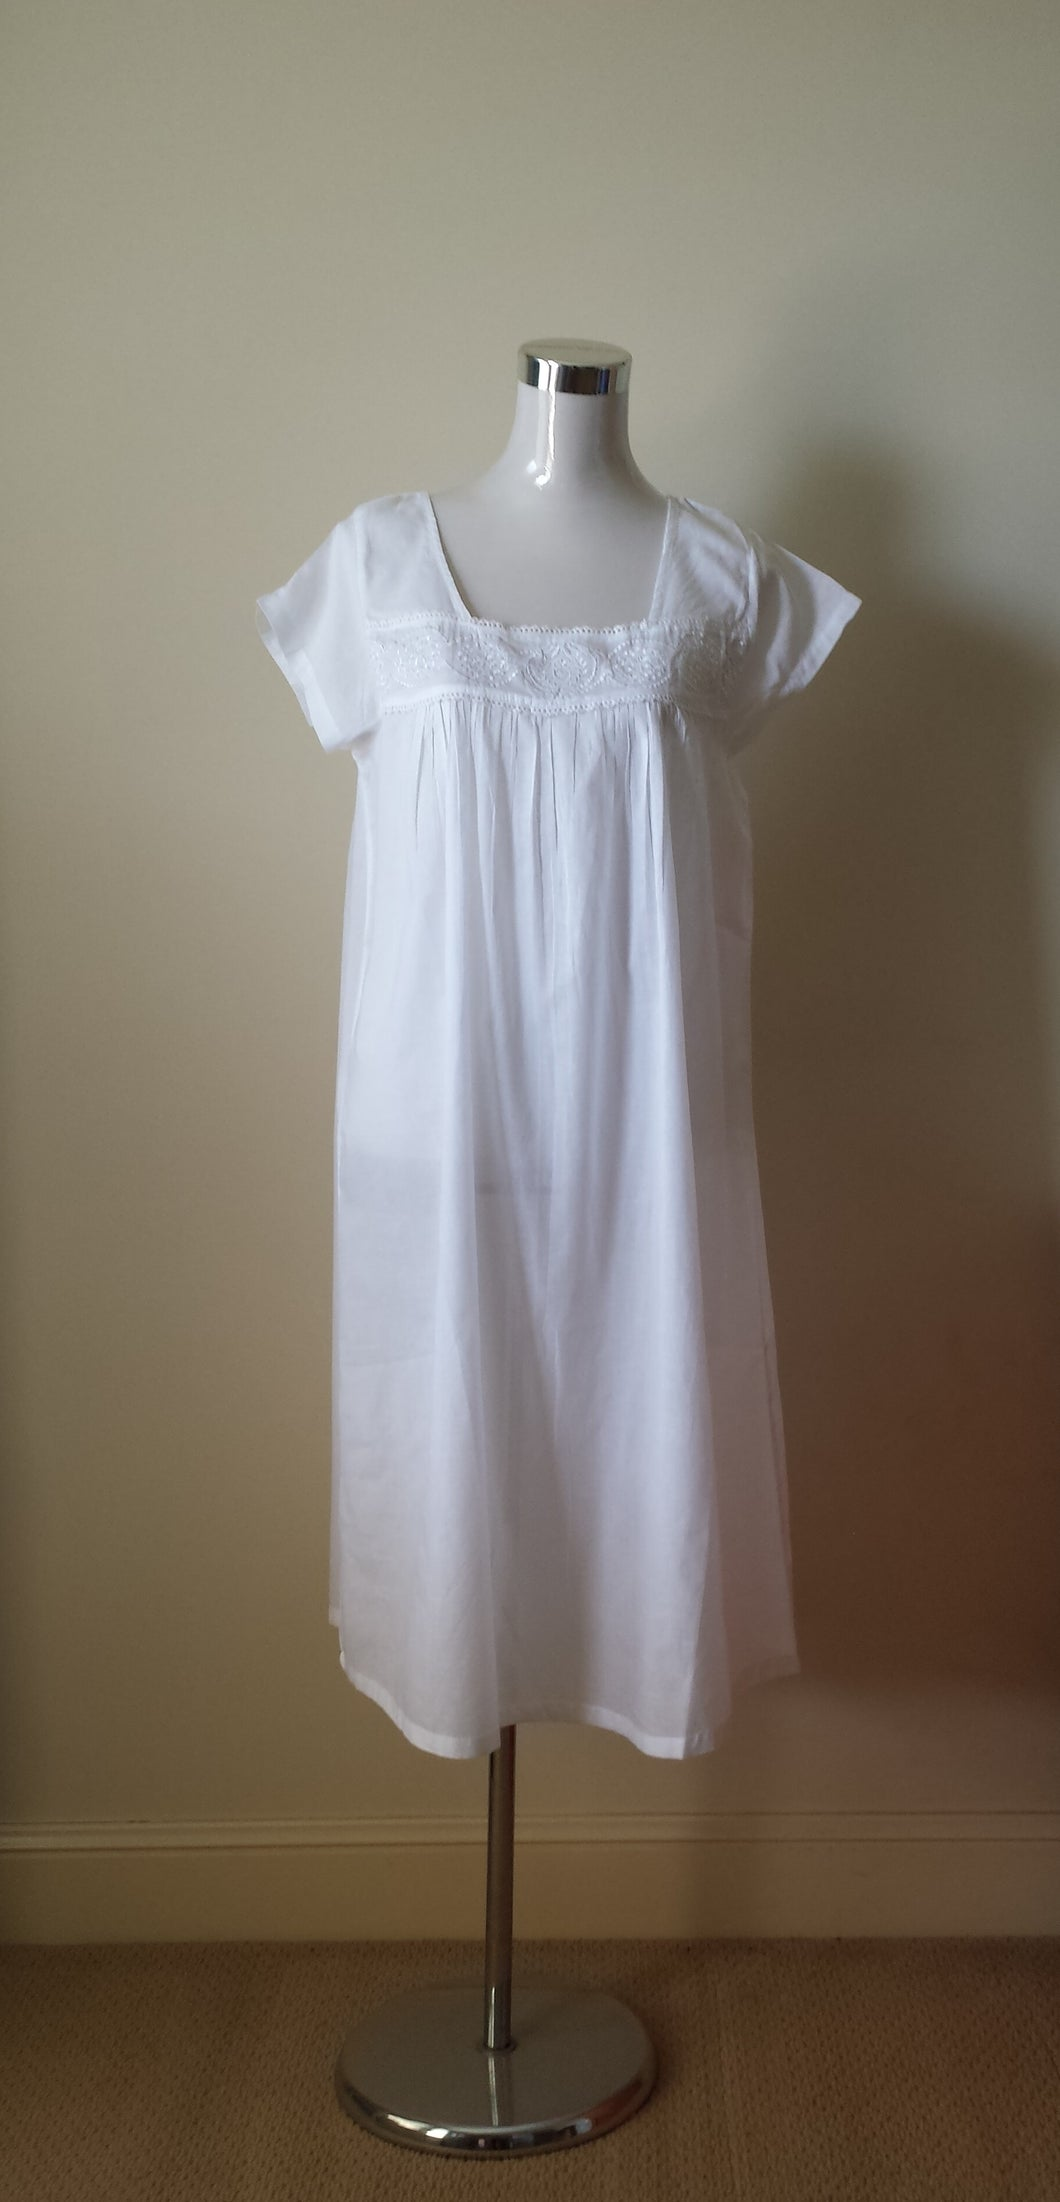 French Country Cotton Voile Nightie Sydney Australia | Pure cotton nighties Sydney Australia | Cotton voile nighties Sydney Australia